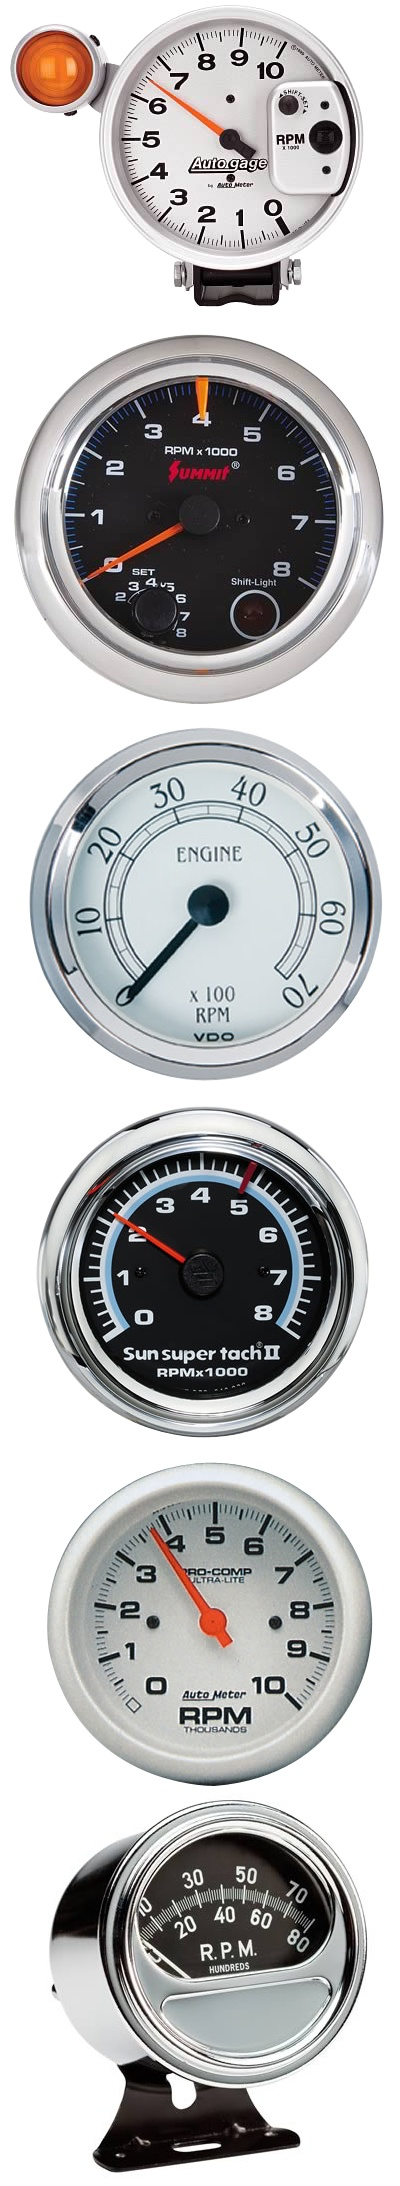 Keep track of your rpms with tachometers from auto meter dakota digital cyberdine and more whether you are looking for a nostalgic look or an digital